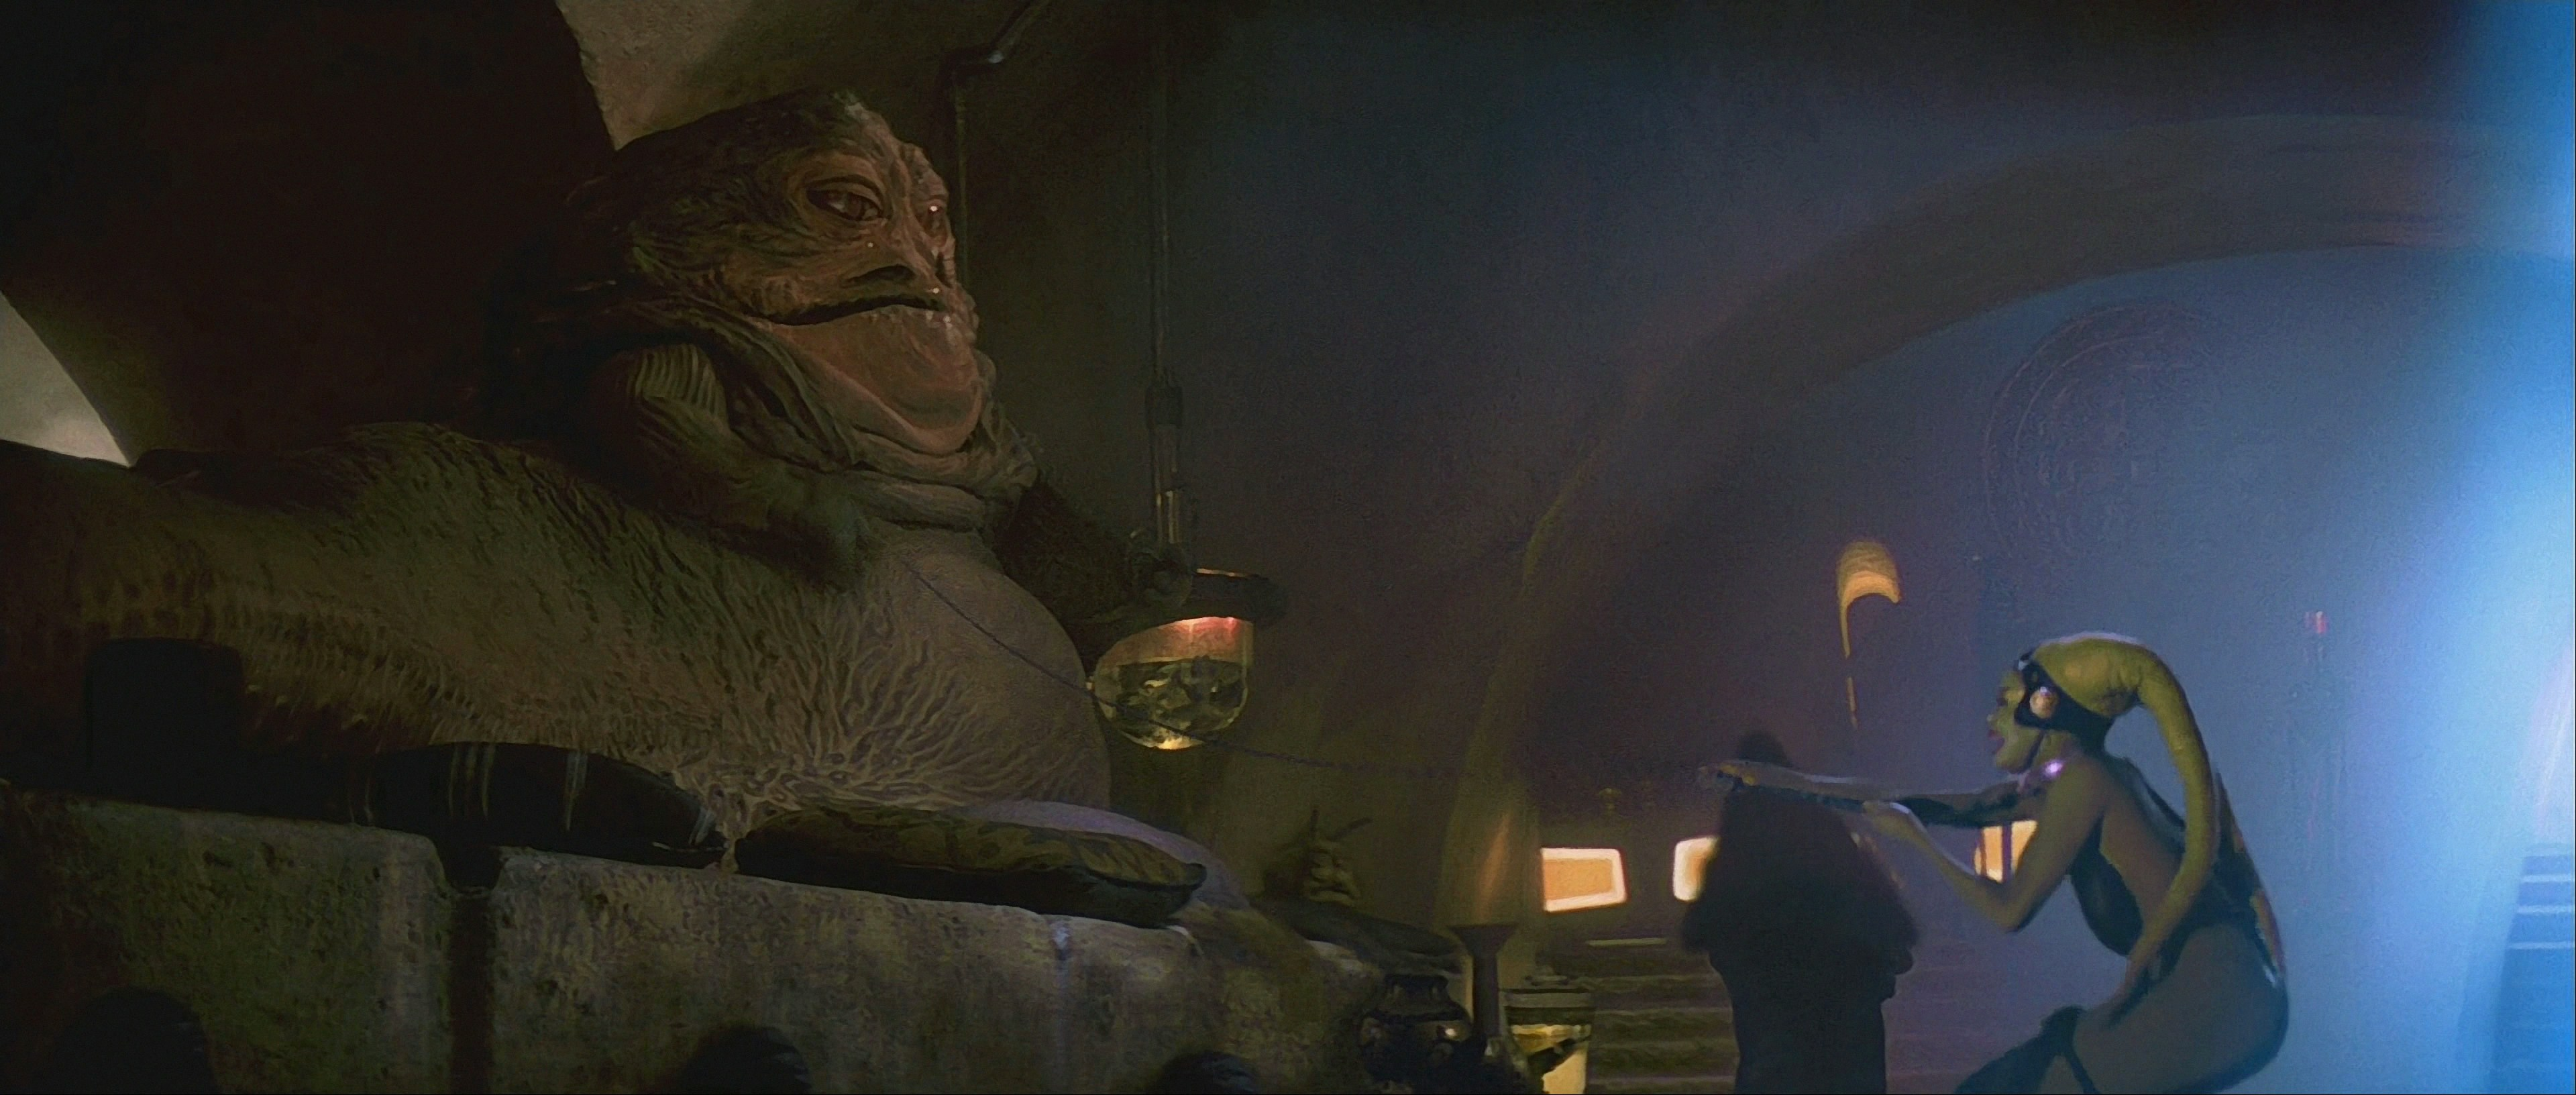 Oola Jabba's Twi'lek Slave images Return of the Jedi ... Jabba The Hutt And Oola